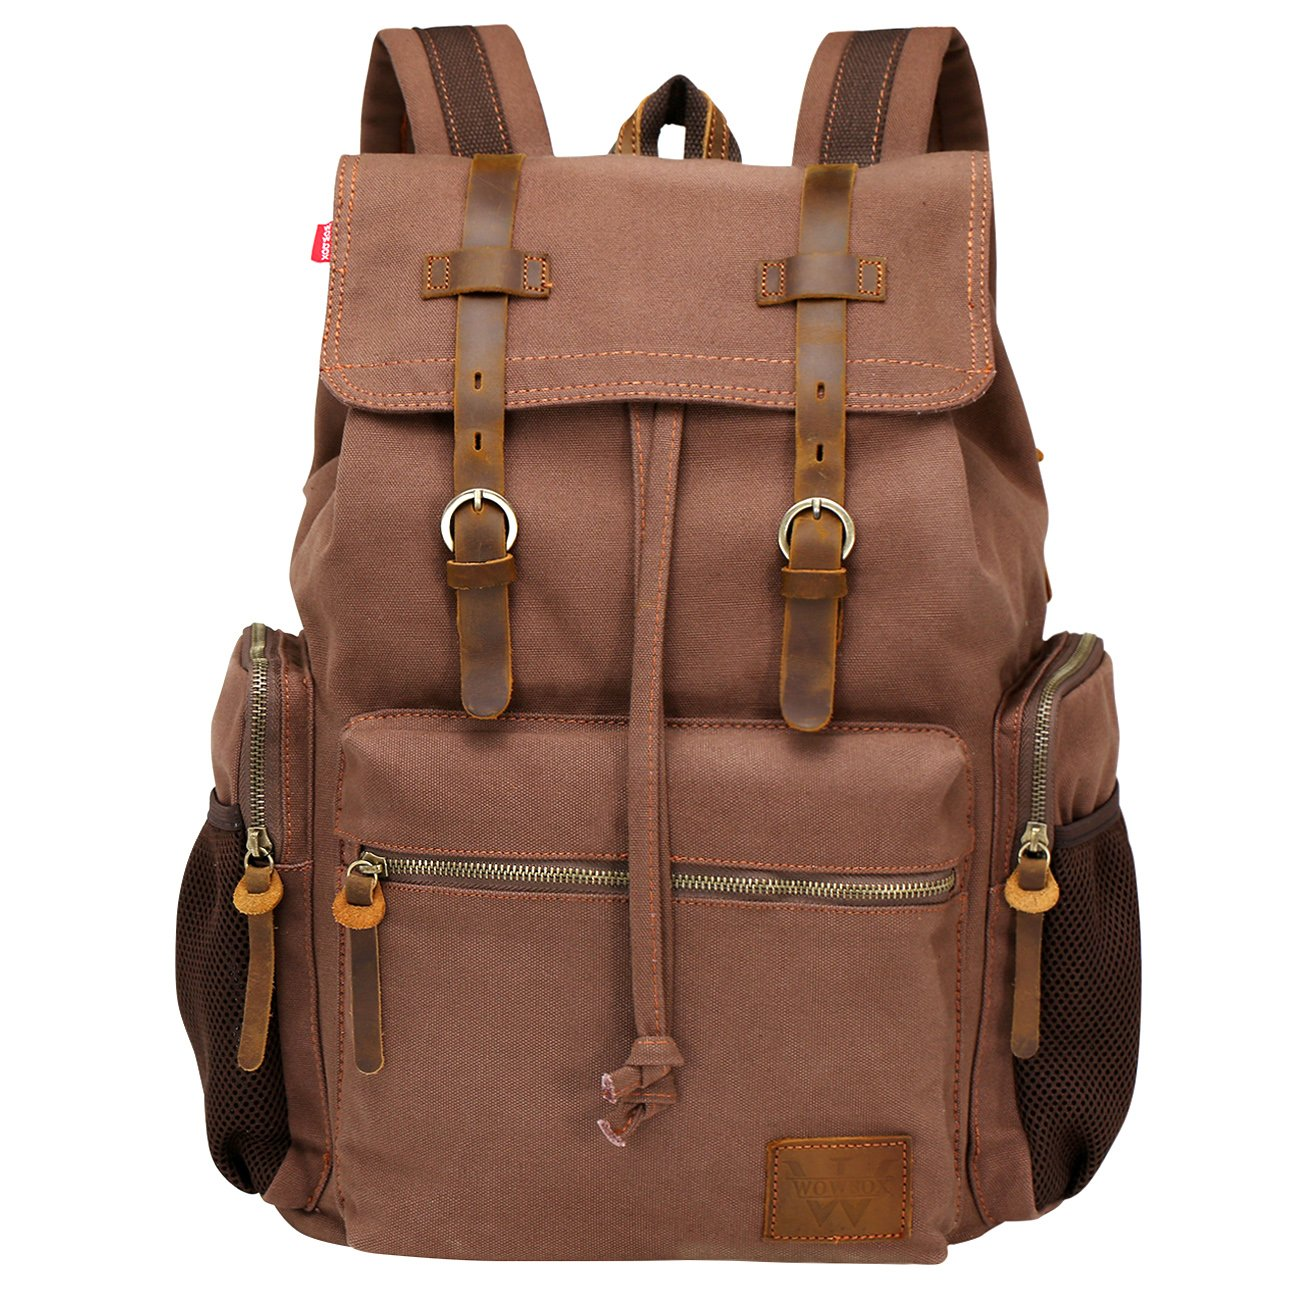 Wowbox 15.6 Inch Laptop Canvas Backpack Unisex Vintage Leather Casual Rucksack  School College Bags Satchel Bookbag Large Capacity Hiking Travel Rucksack  ... a22b0f2e031ba